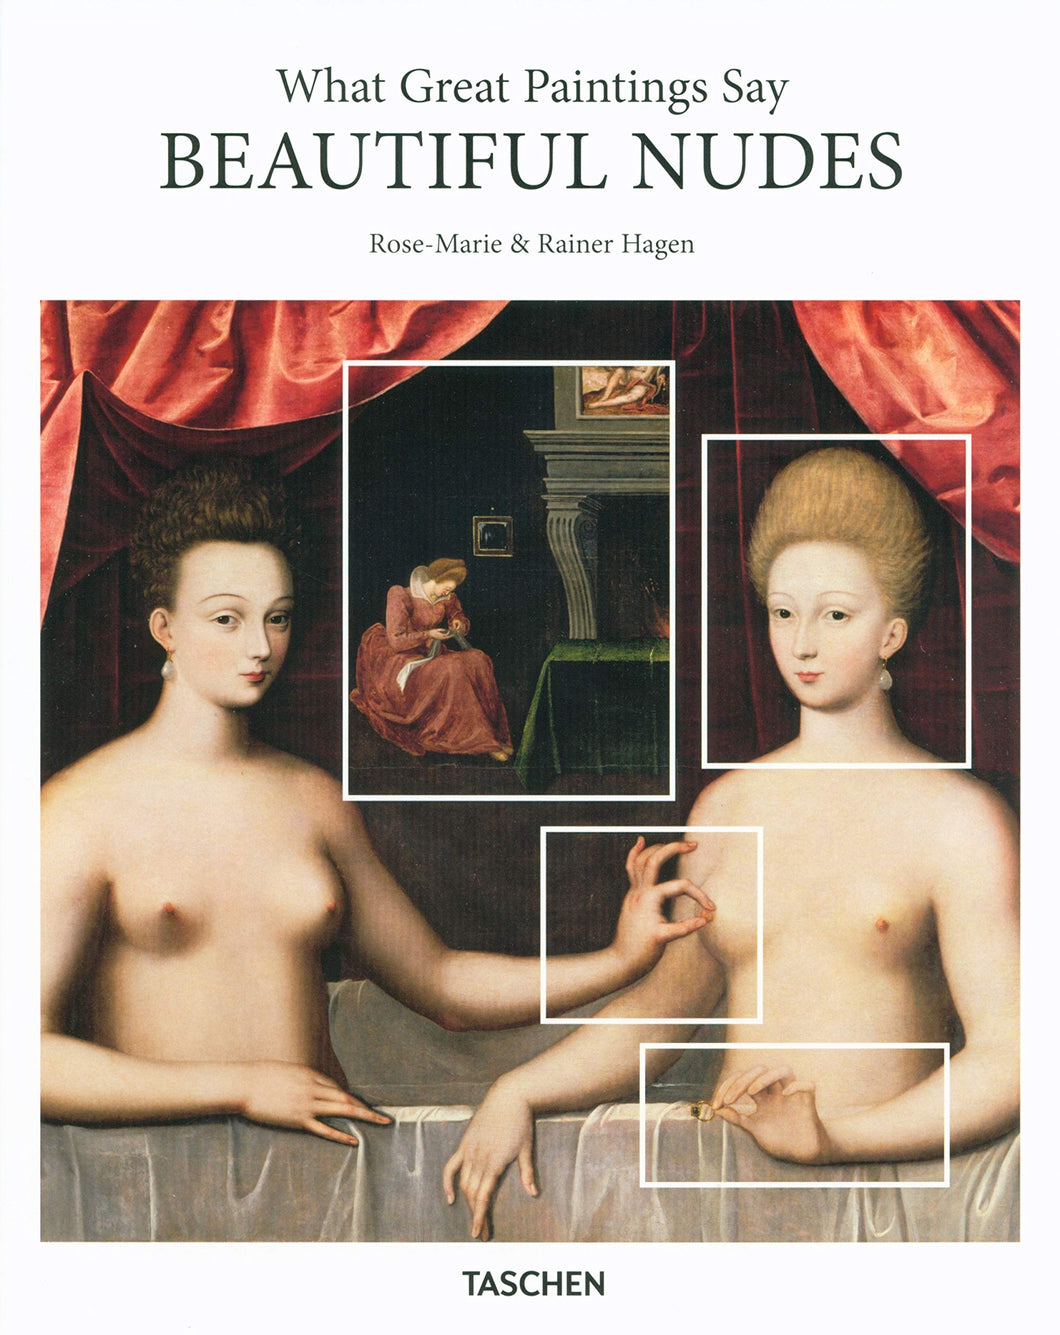 Beautiful Nudes Book